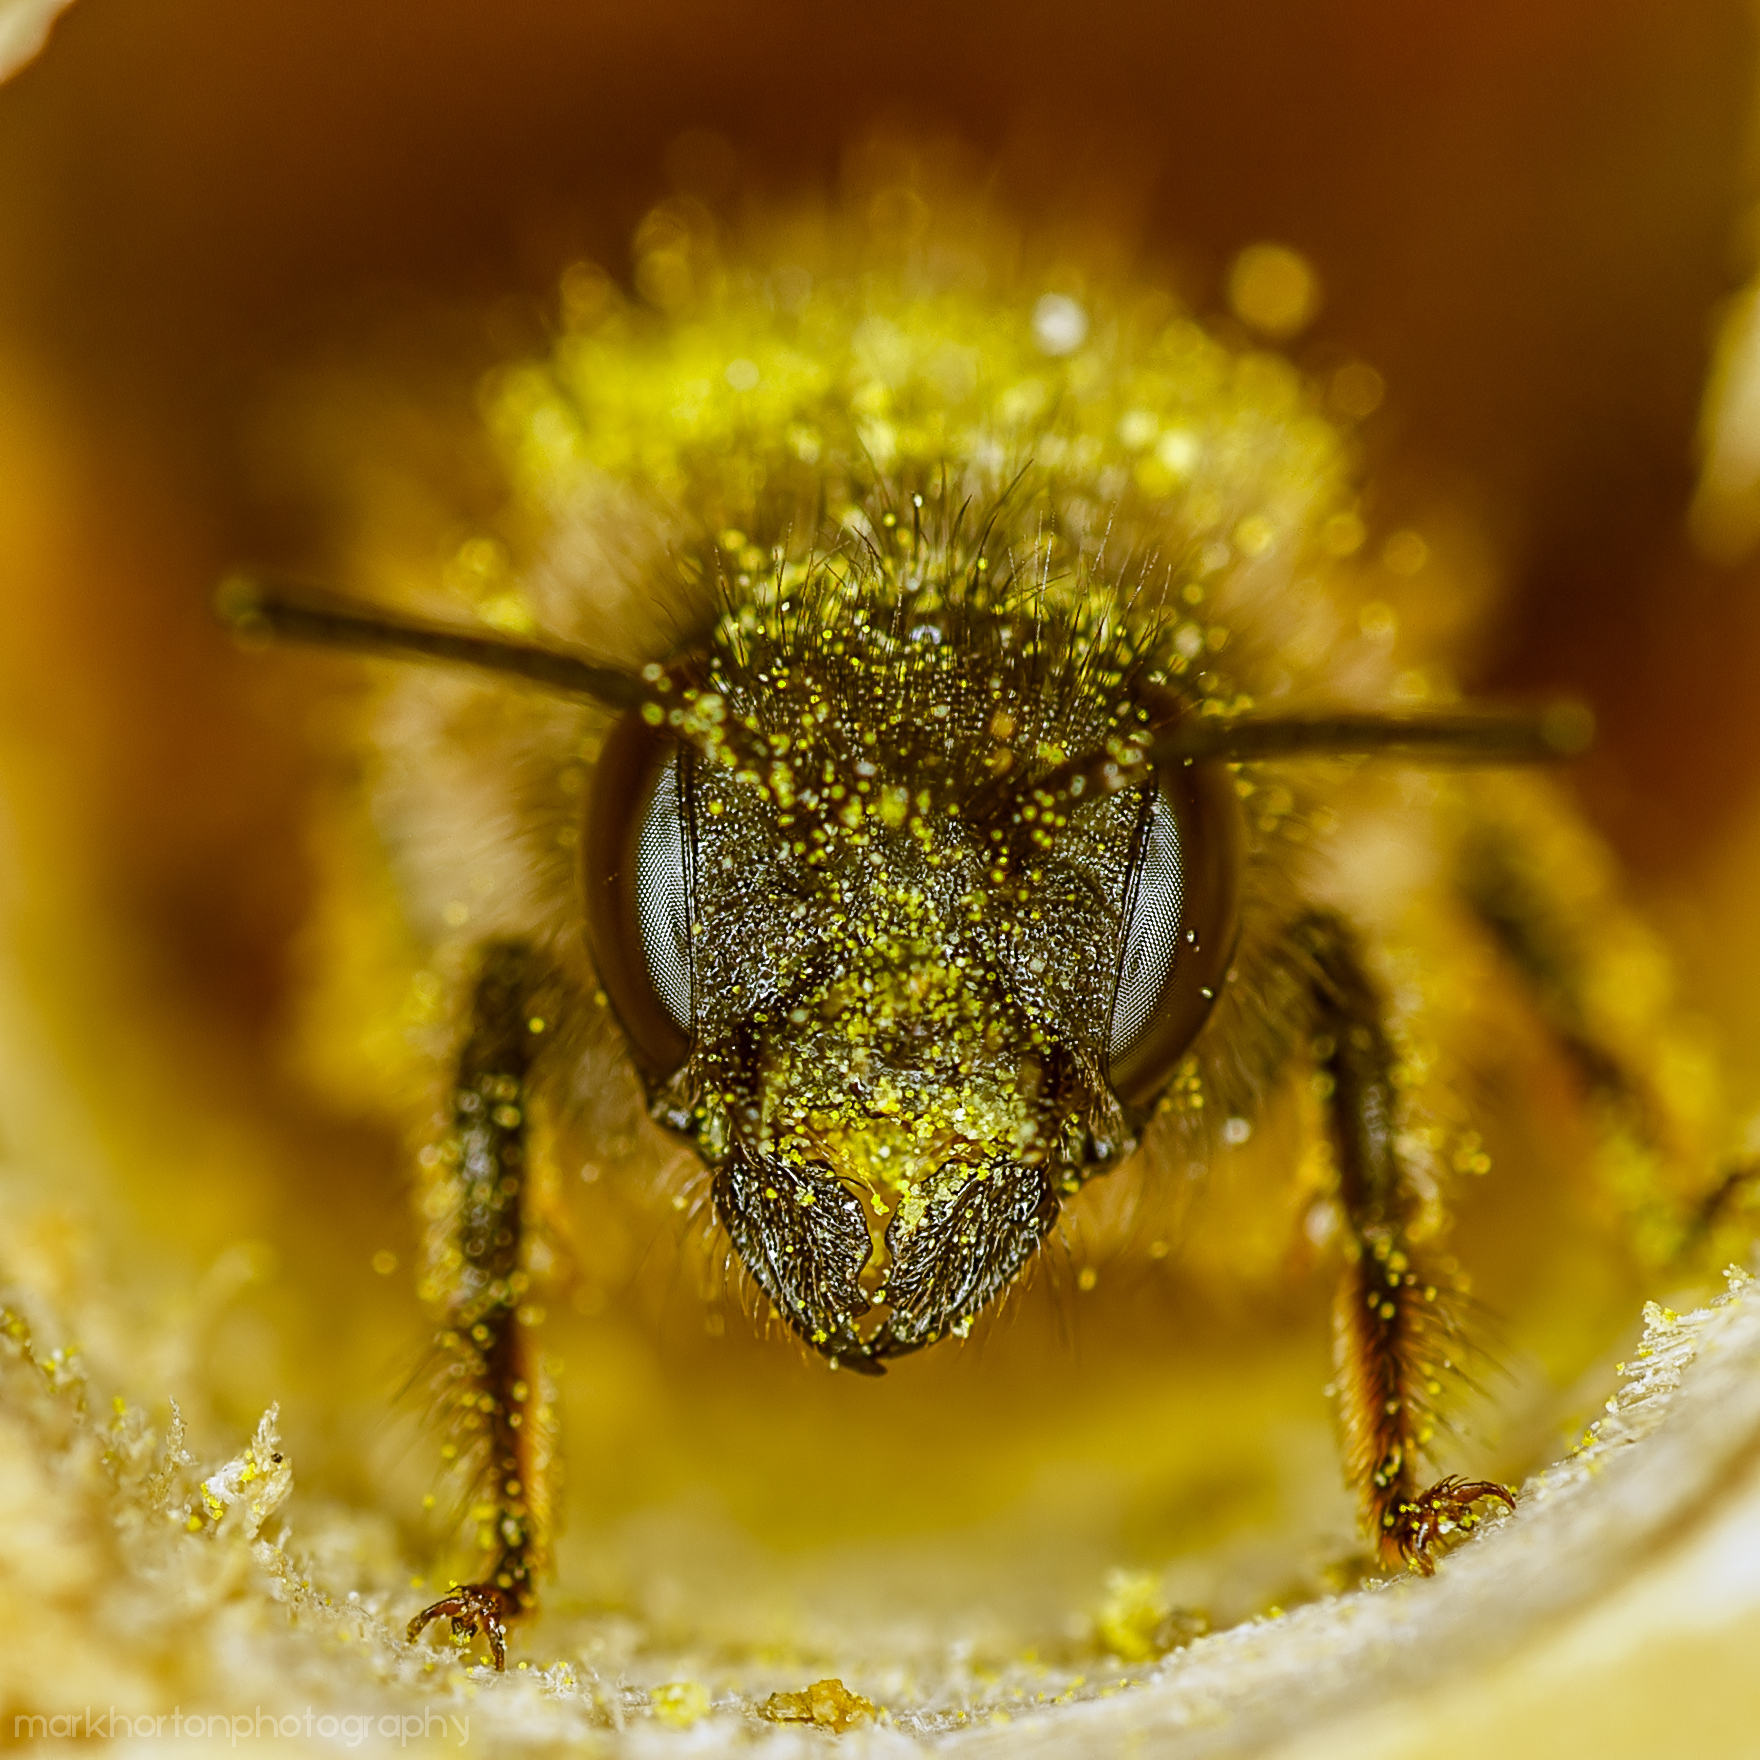 A bee who has just finished making some bee bread, which contains plant microRNA that will affect the development of the larvae who eat it.